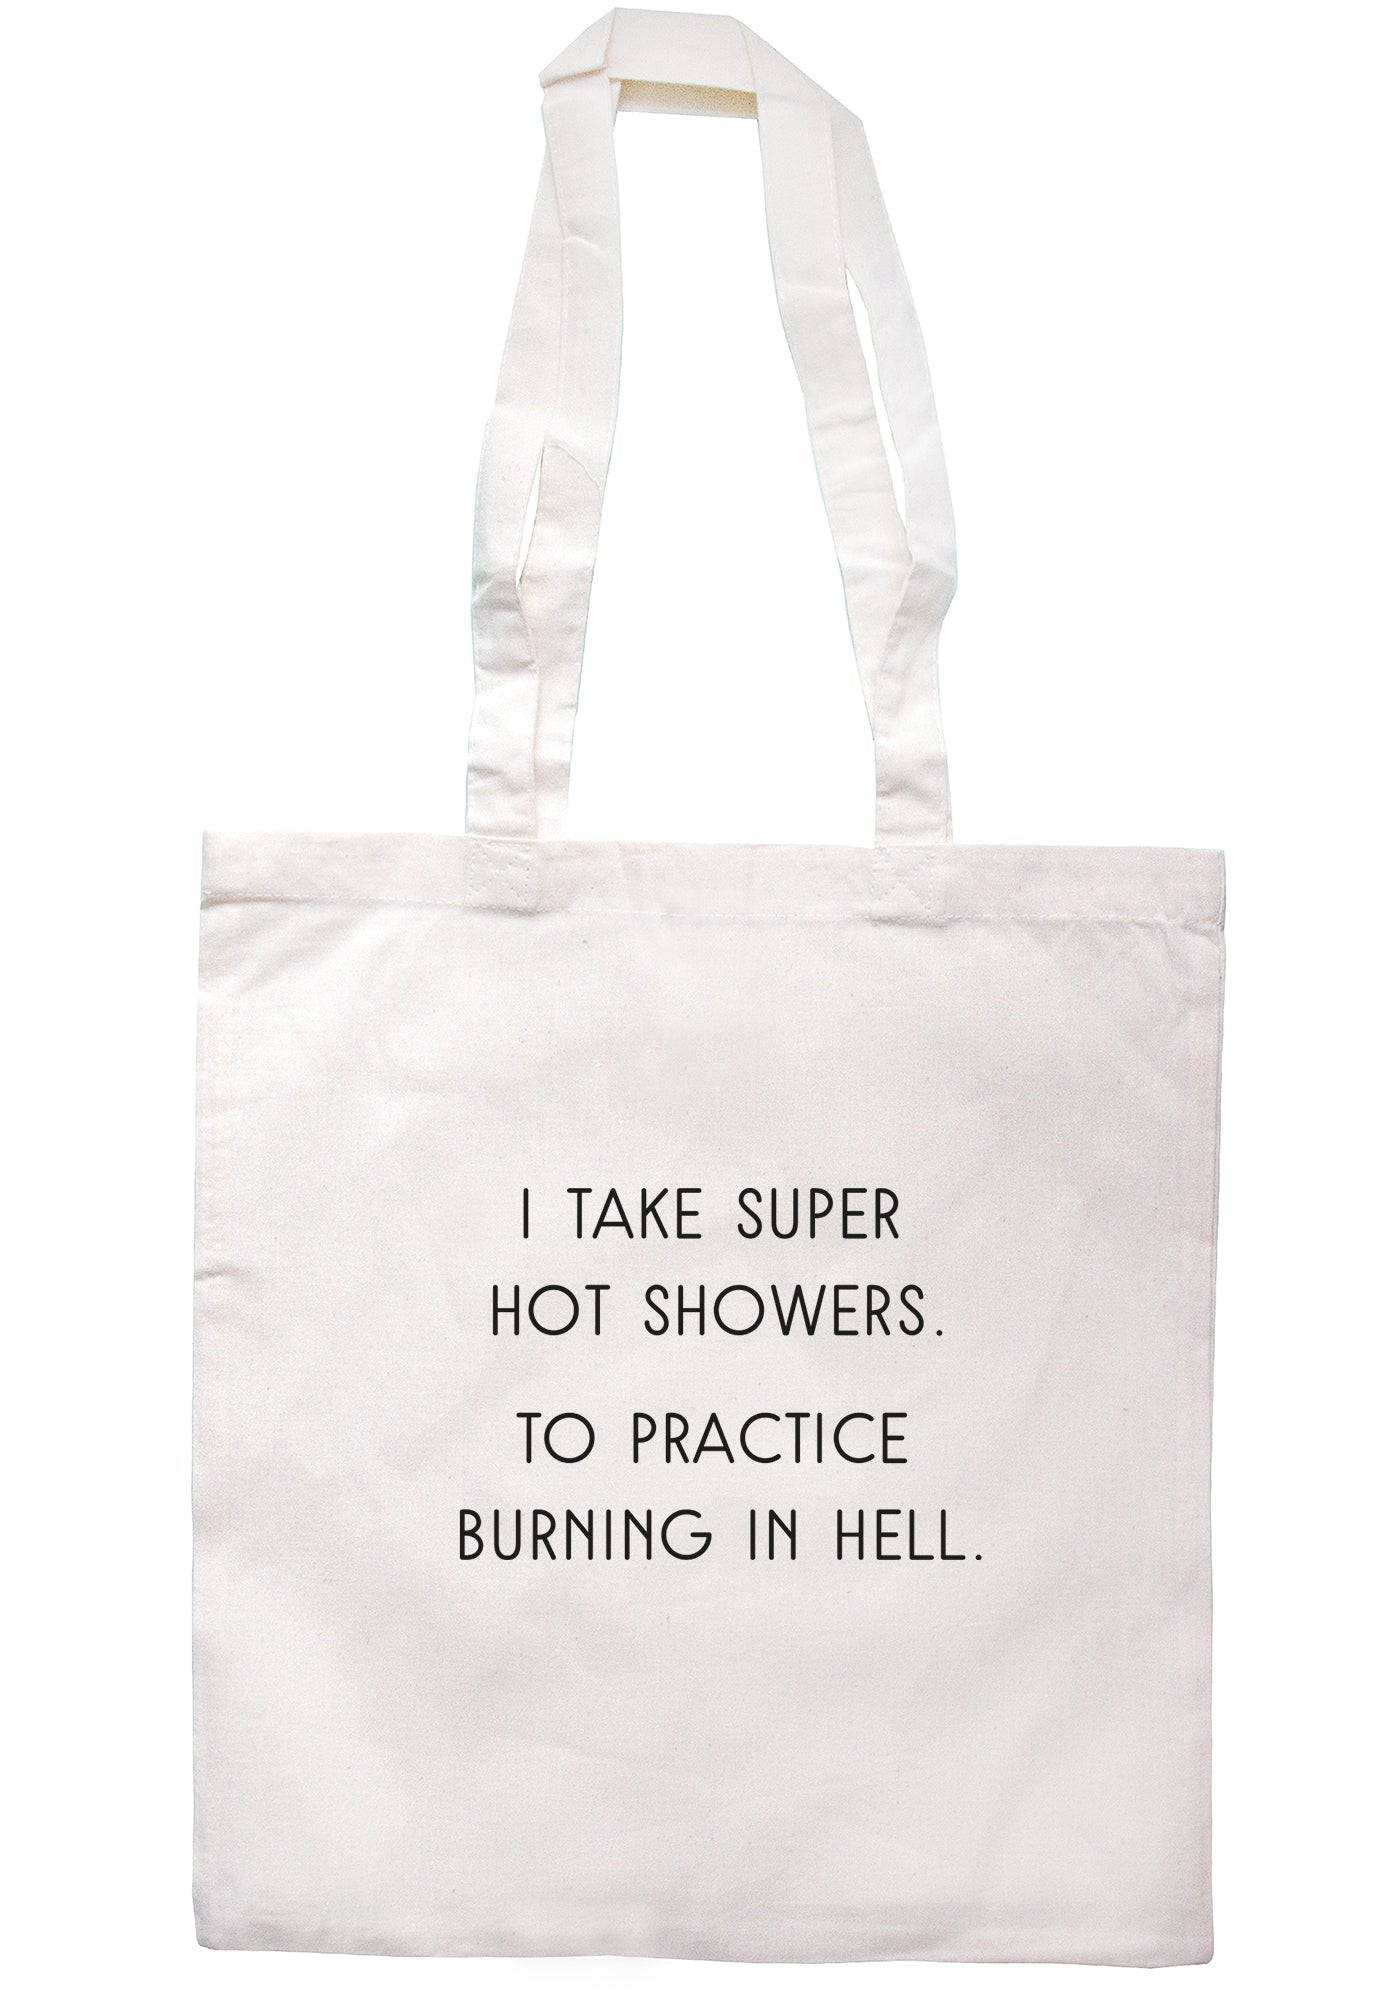 I Take Super Hot Showers. To Practice Burning In Hell. Tote Bag S1121 - Illustrated Identity Ltd.